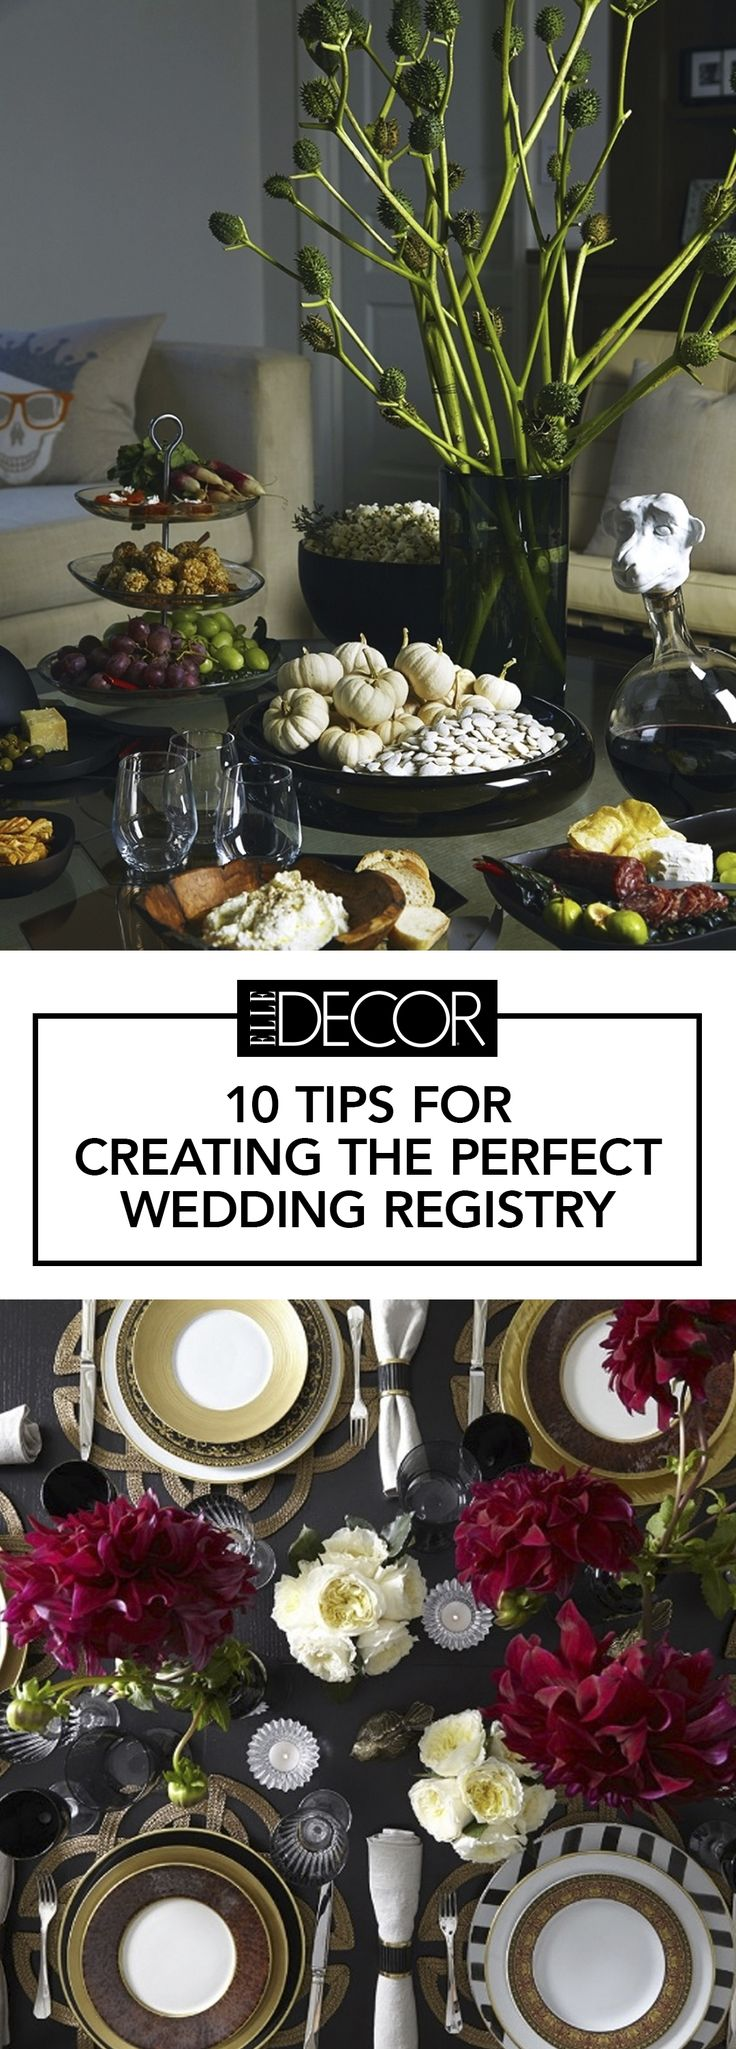 106 best wedding registry ideas images on pinterest couples 10 wedding registry tips youll wish you knew before finalize your list according to junglespirit Images